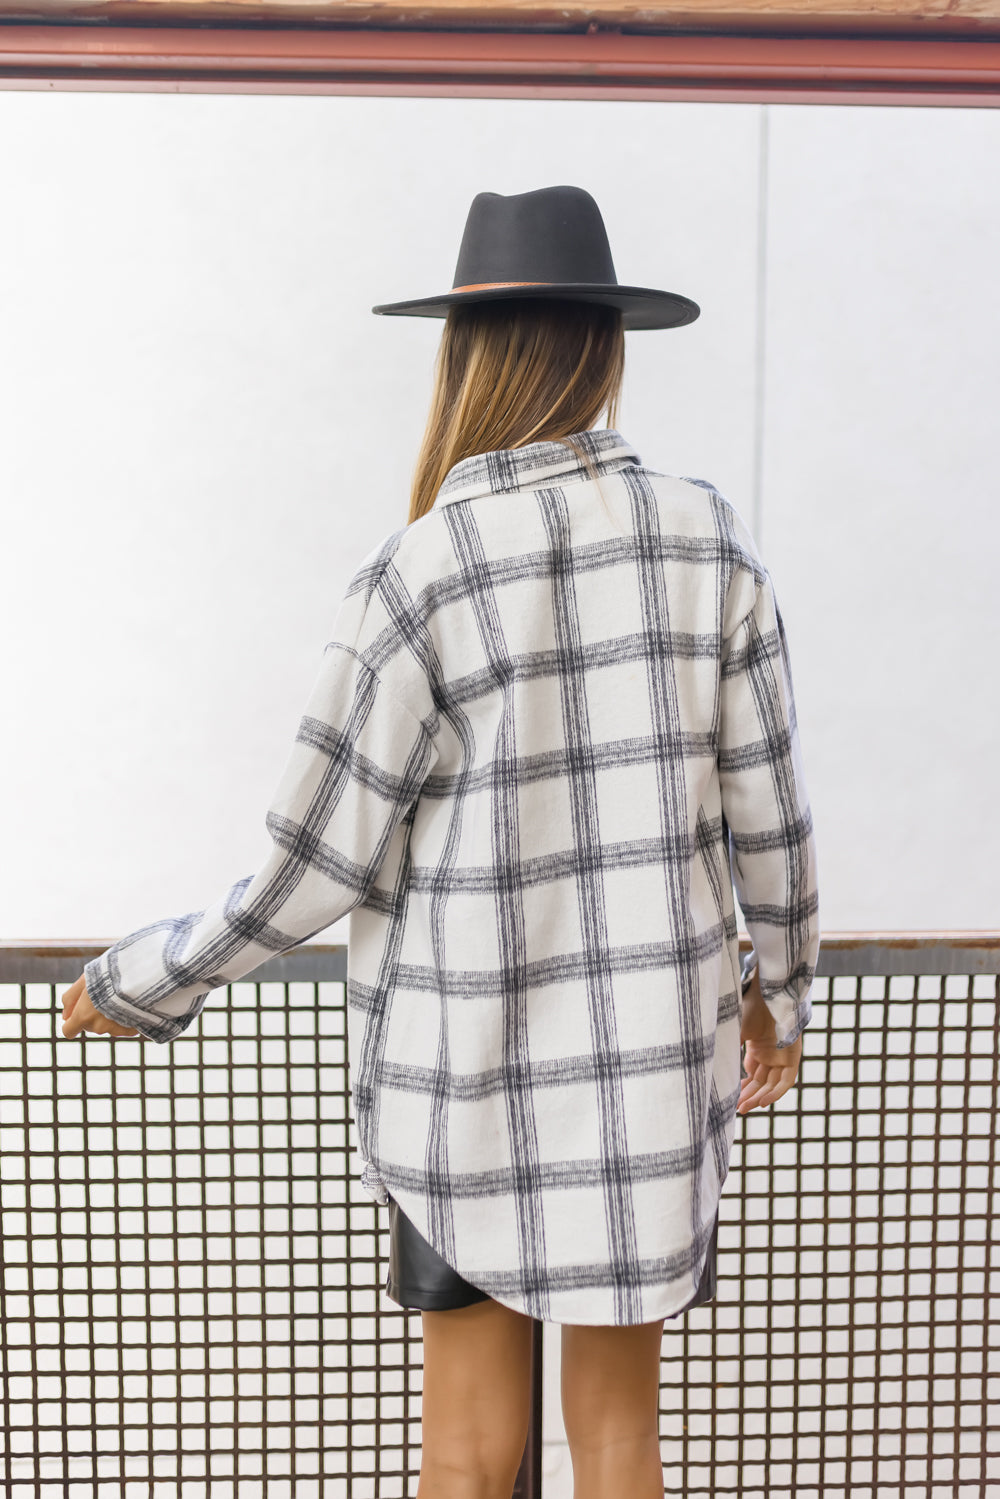 Toni Long Sleeve Smocked Floral Top